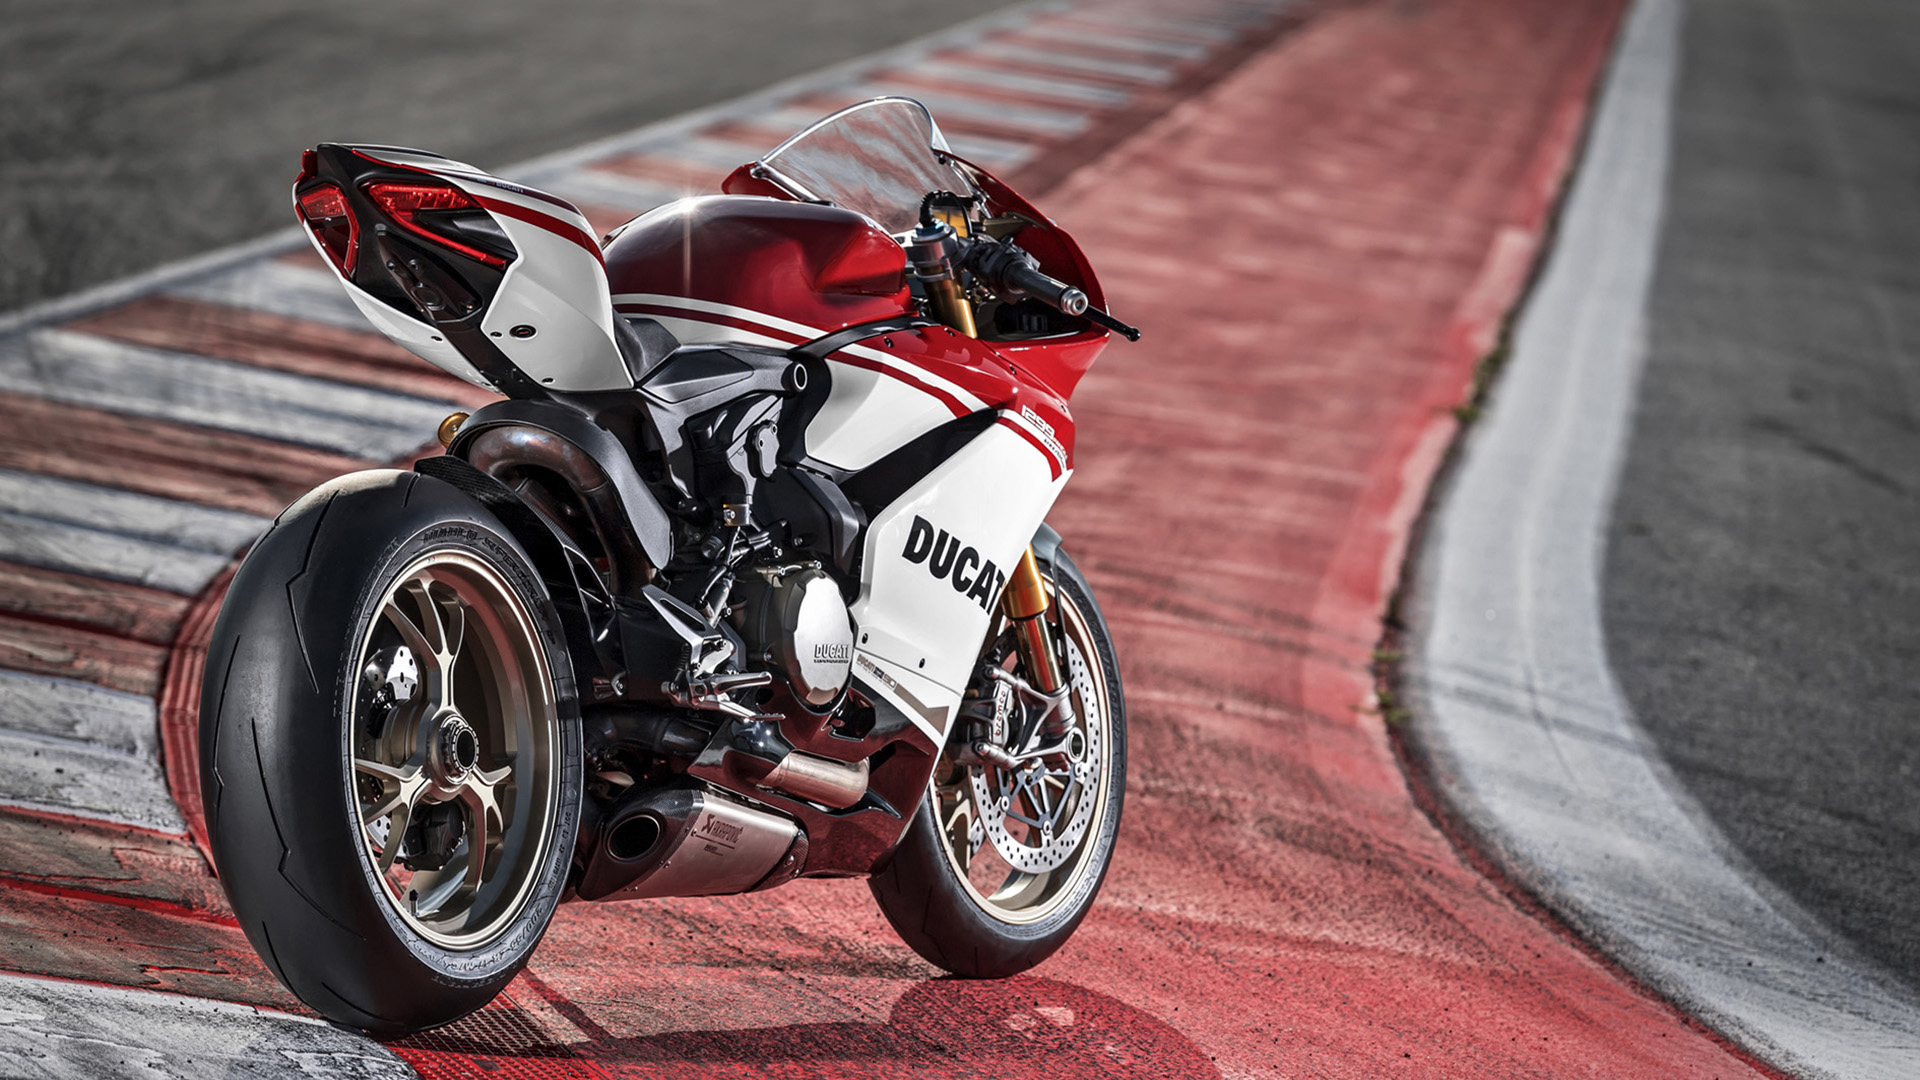 Ducati 1299 Panigale S 4k Wallpapers: 1299 Panigale S Anniversario » Multimedia